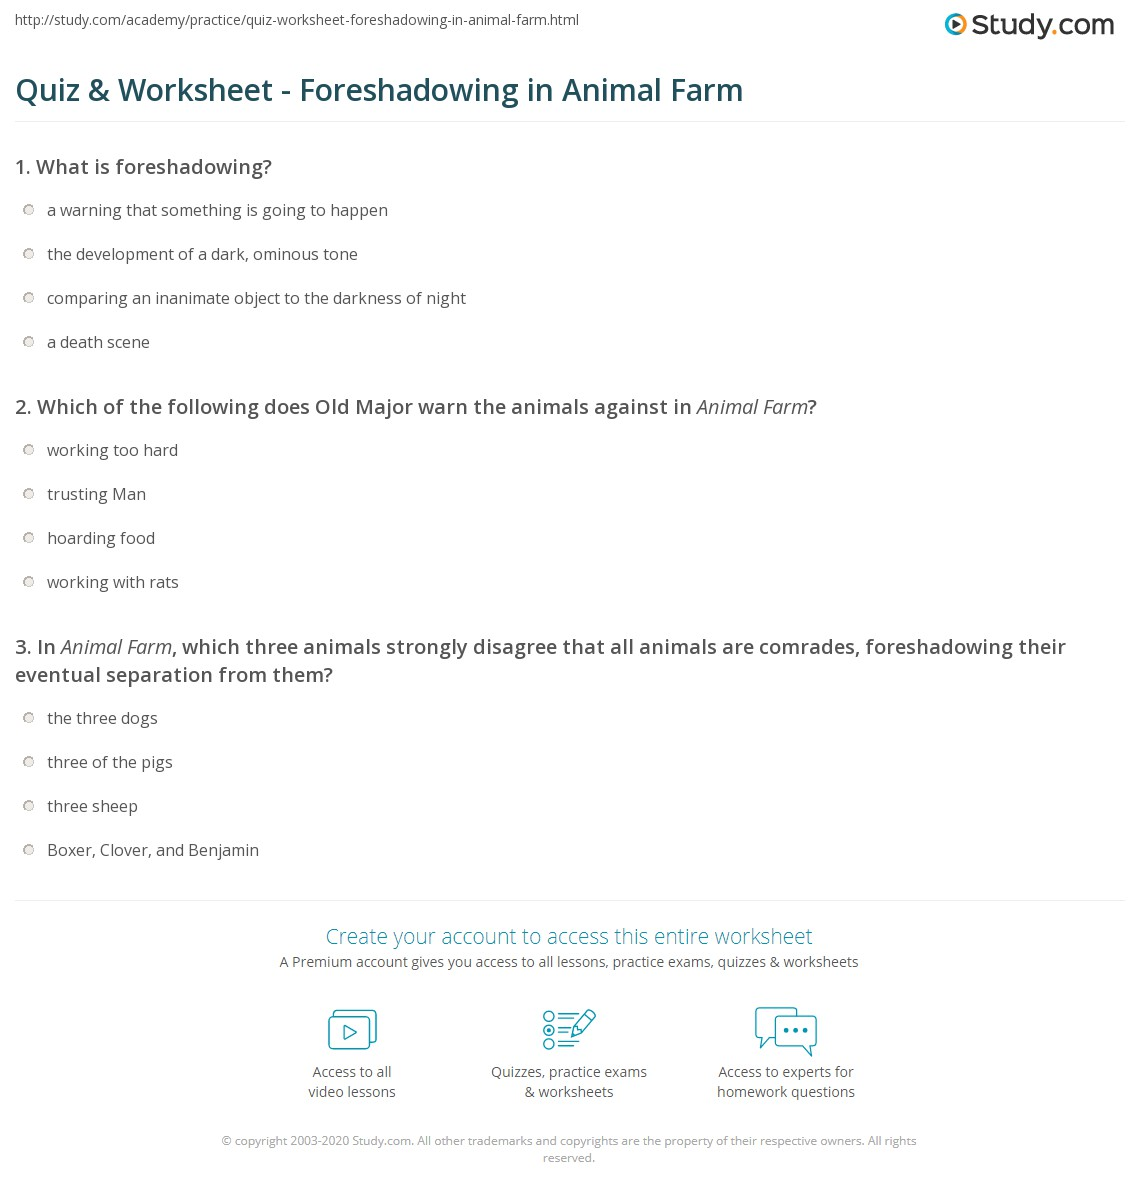 Worksheets Foreshadowing Worksheets quiz worksheet foreshadowing in animal farm study com print worksheet